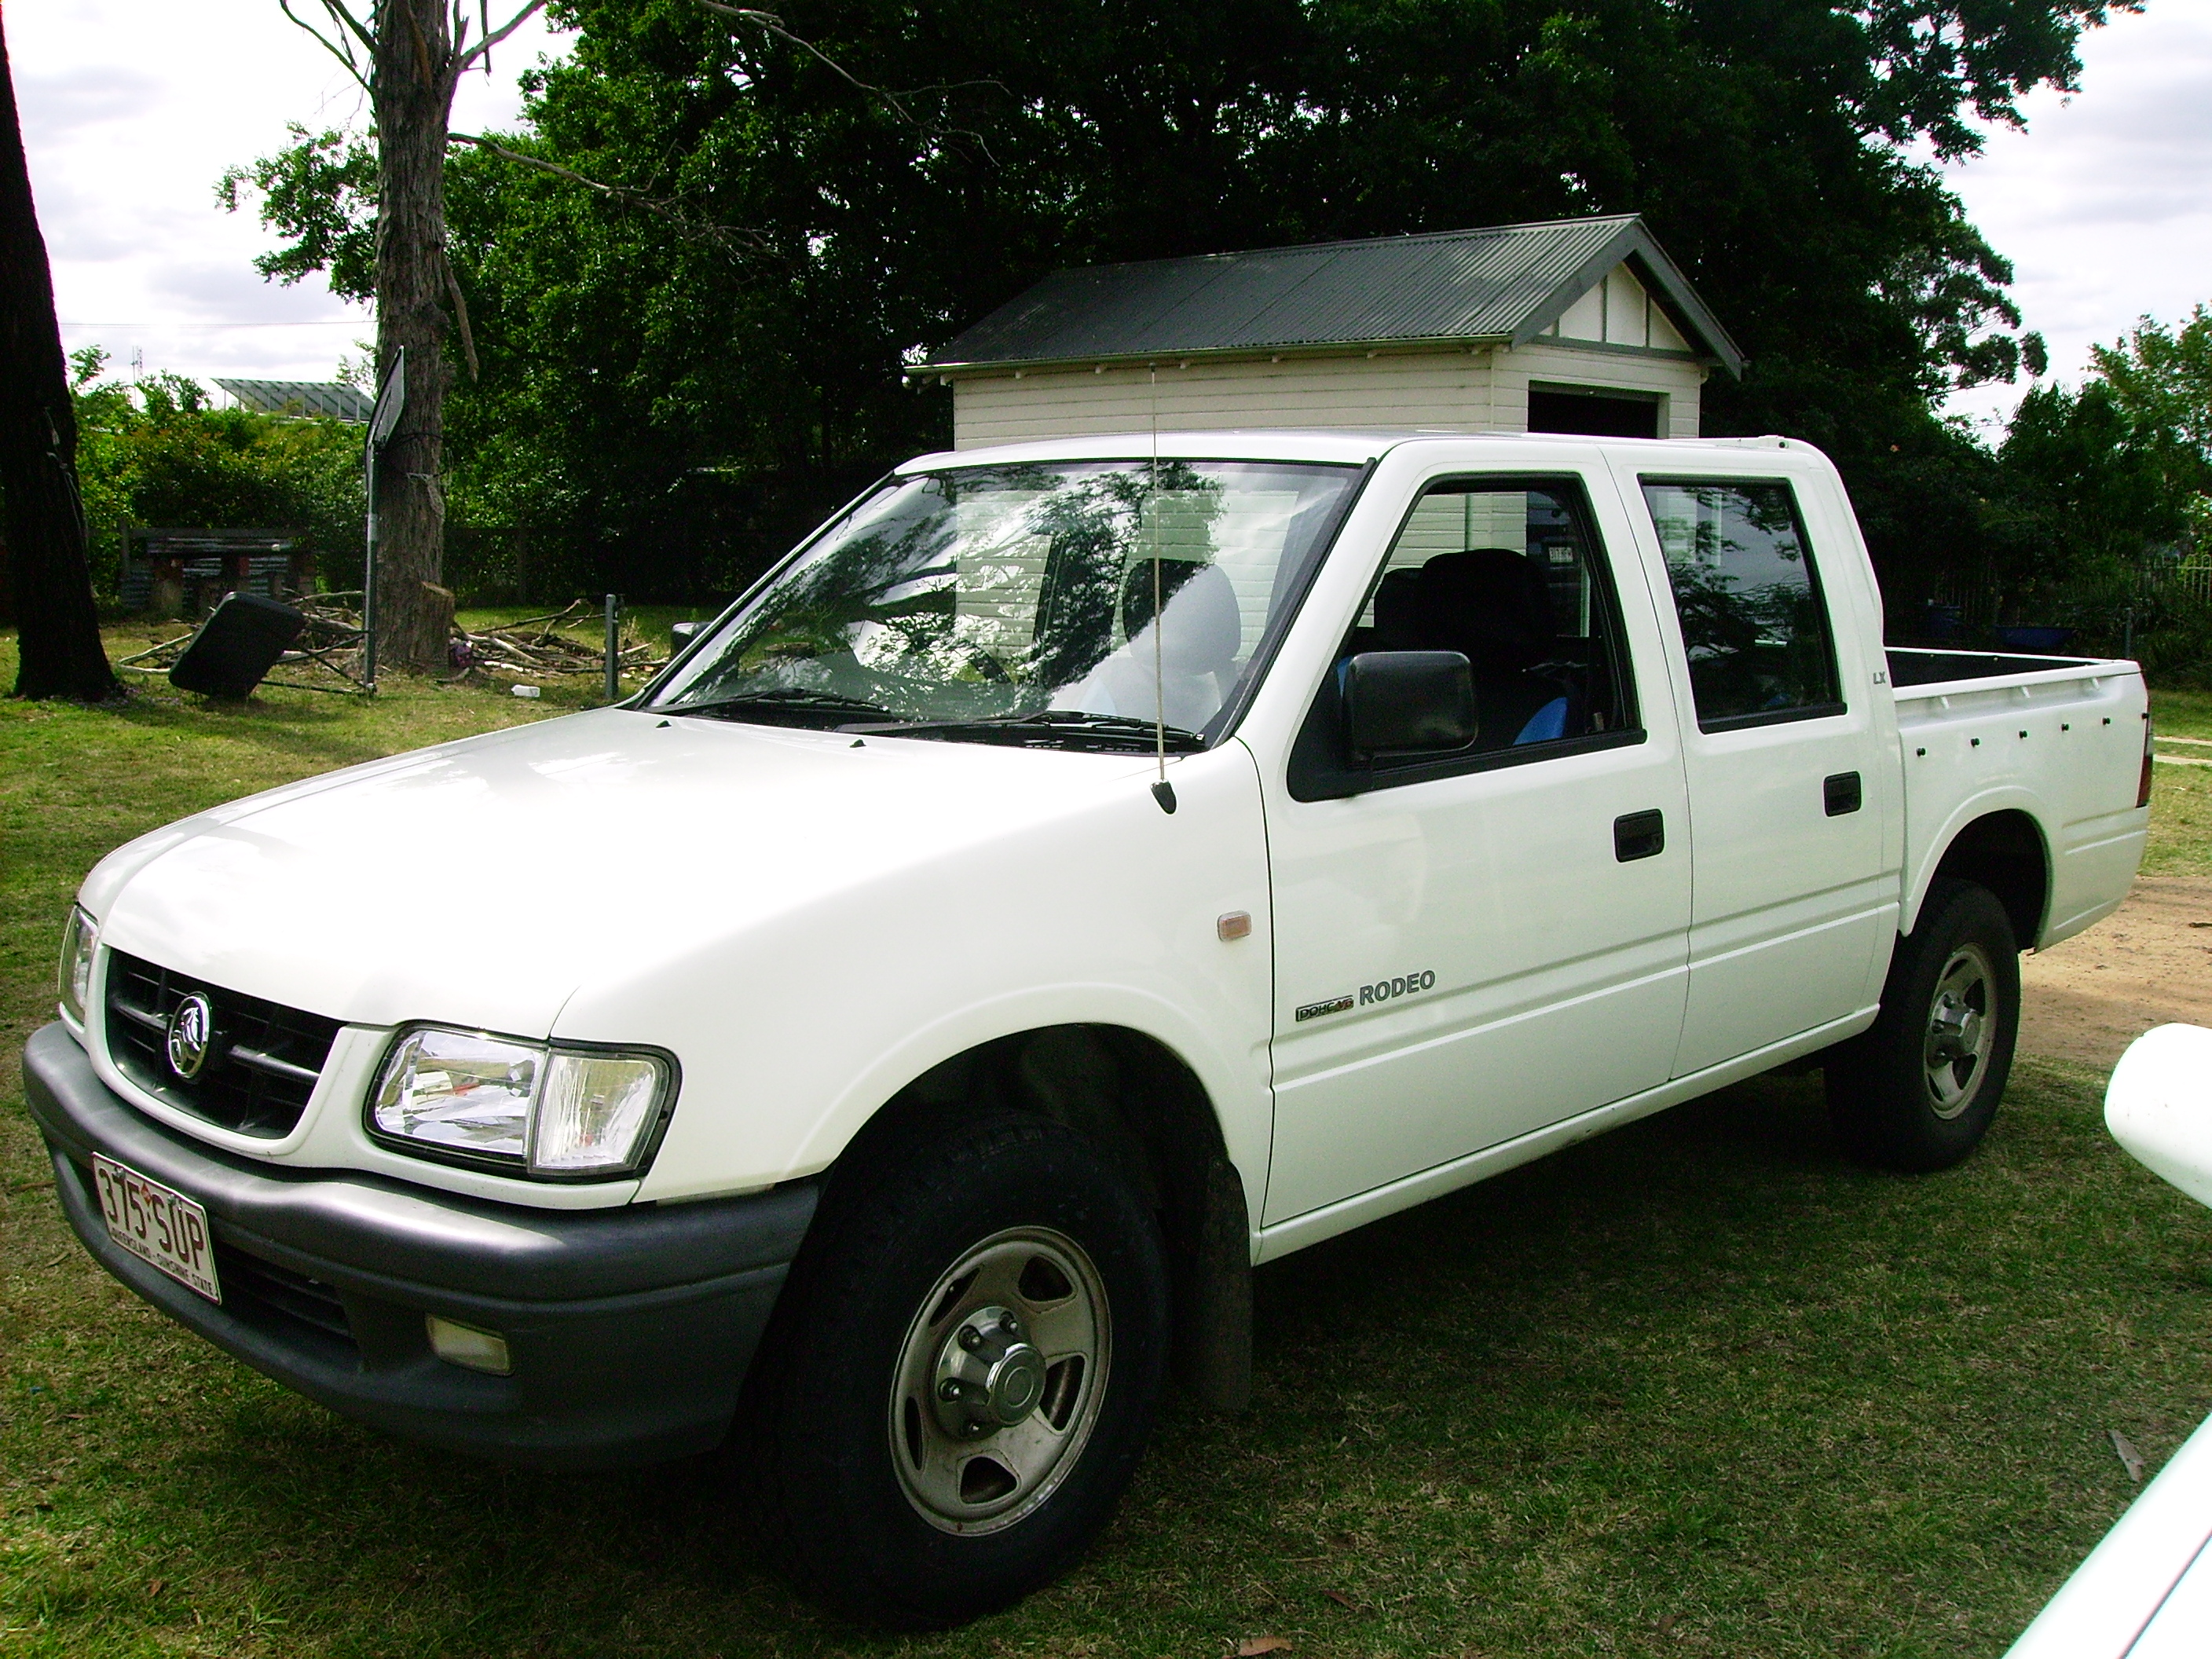 All photos of the renault rodeo 6 on this page are represented for - Holden Rodeo 2002 Gas Petrol